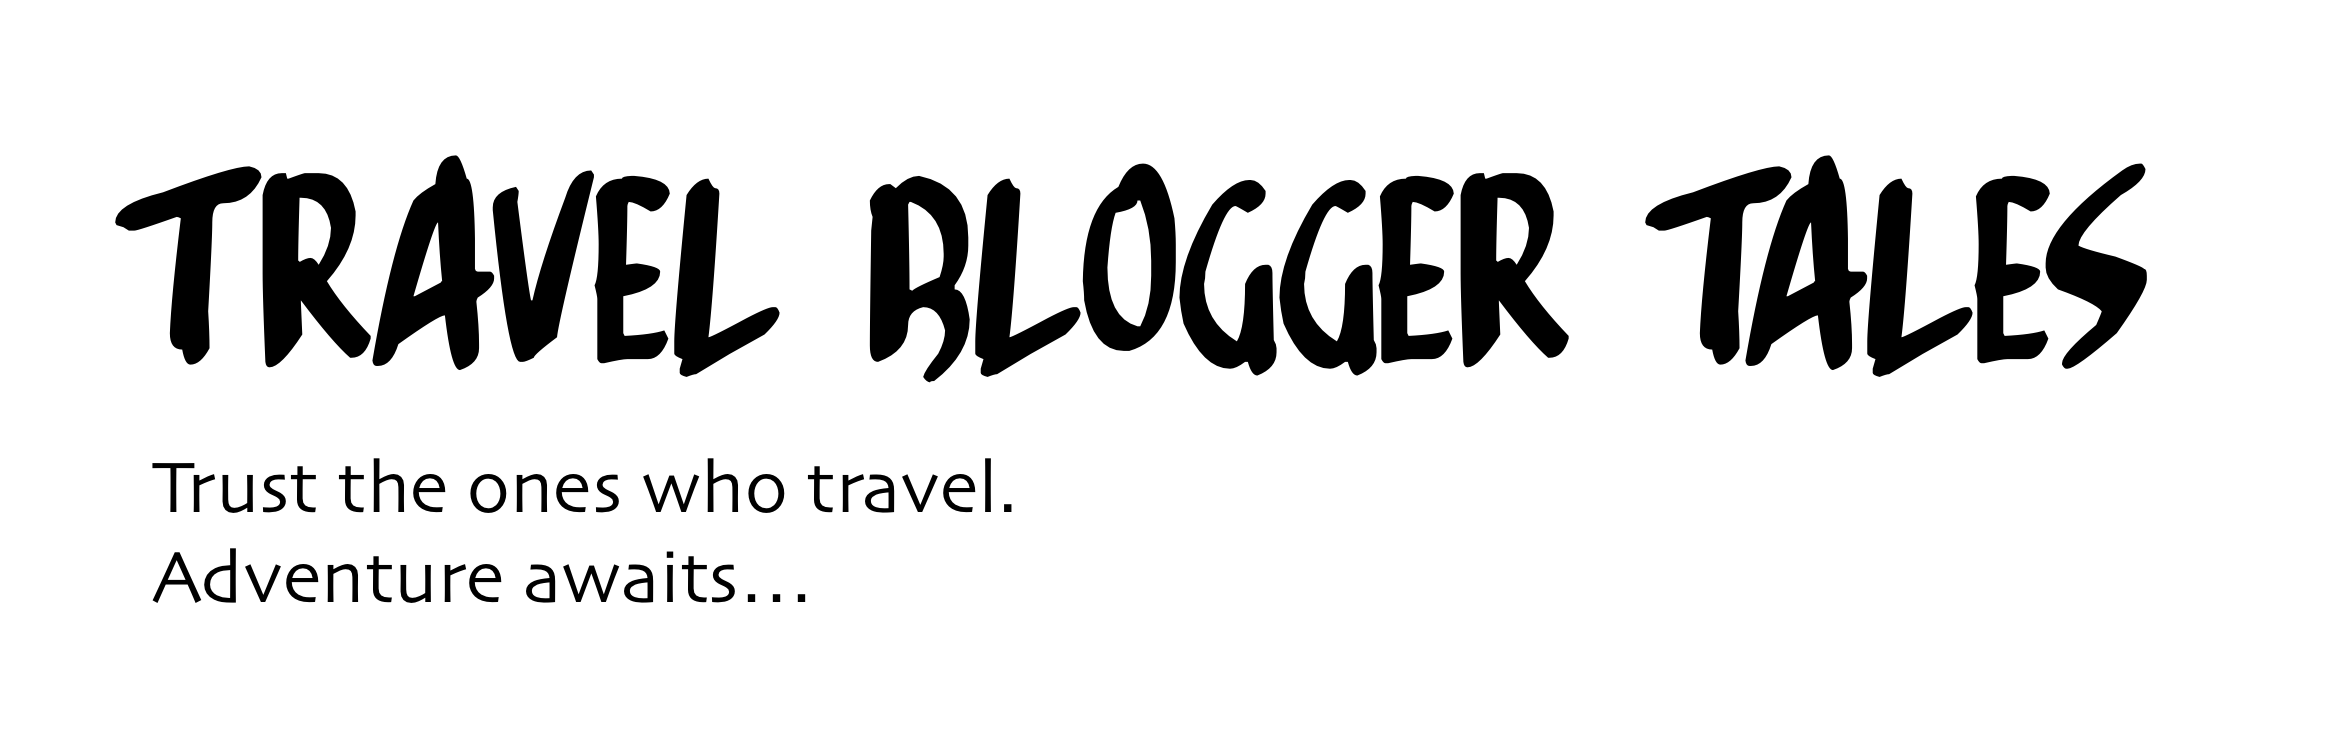 Travel Blogger Tales